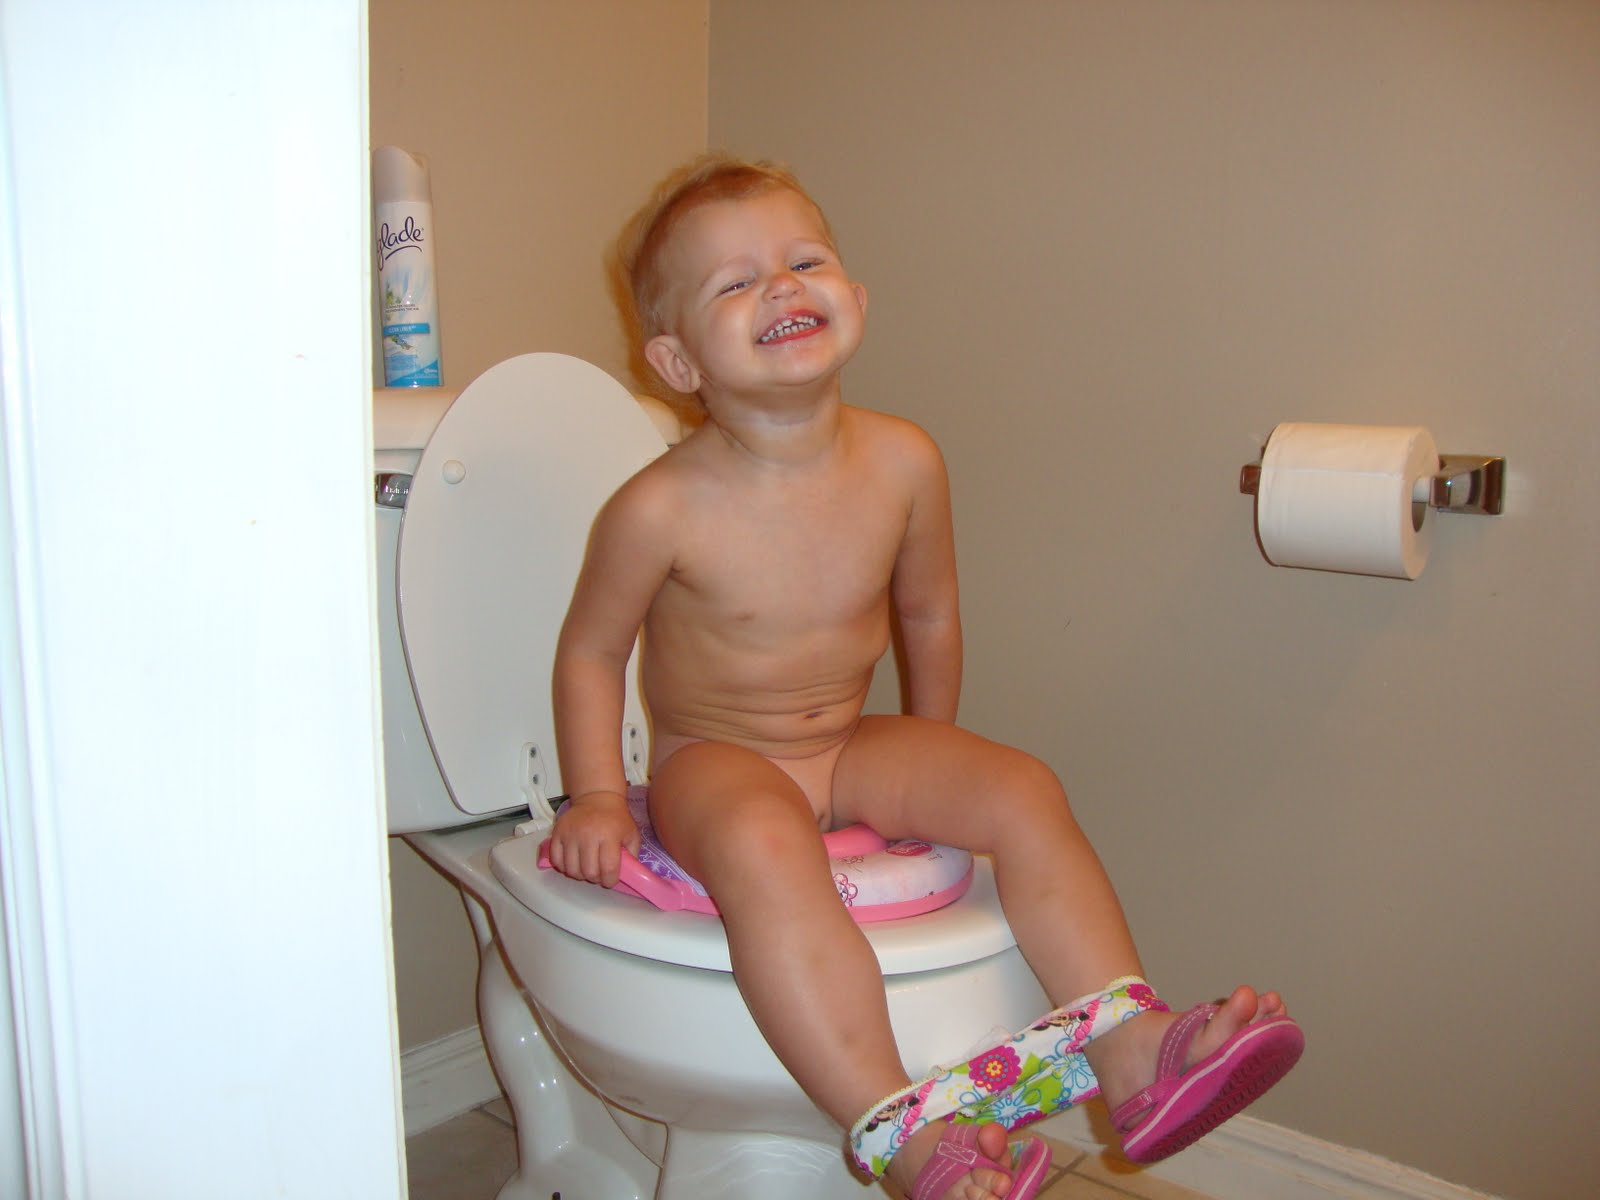 Big Poop in Toilet http://jordanandruthy.blogspot.com/2011/01/potty-training.html